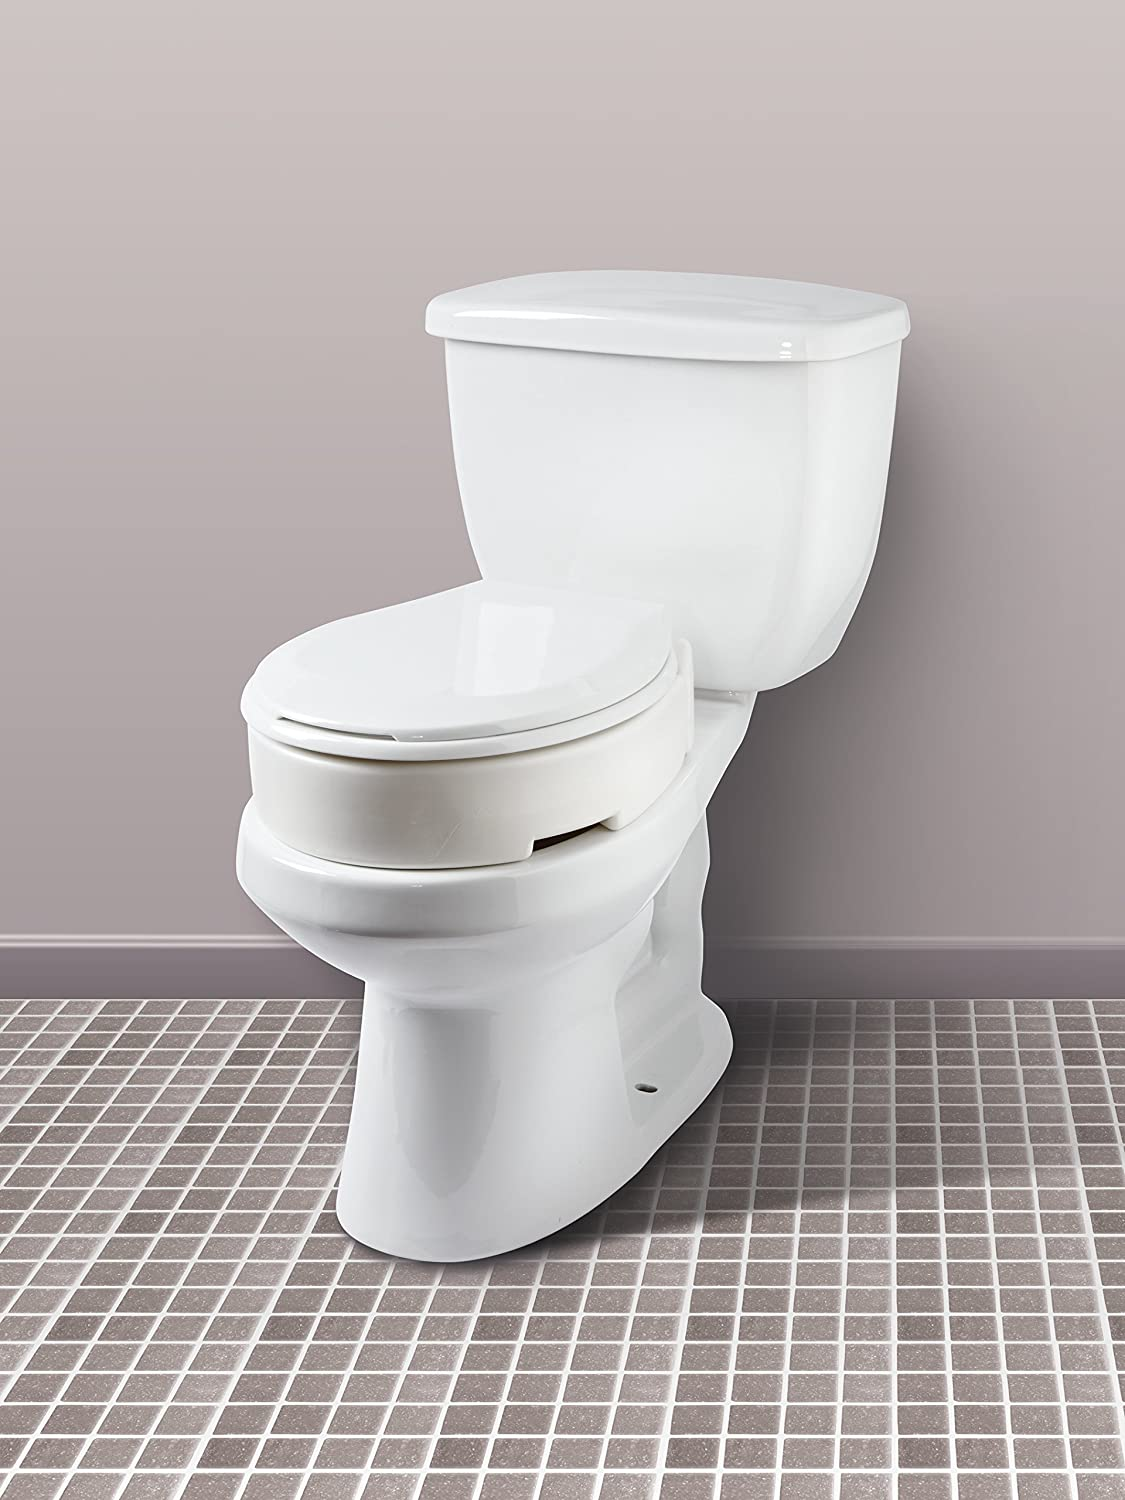 Toilet Safety Frame Canada Aluminum Toilet Hand Rail Twopoint Floor Contact Airway7009 Carex